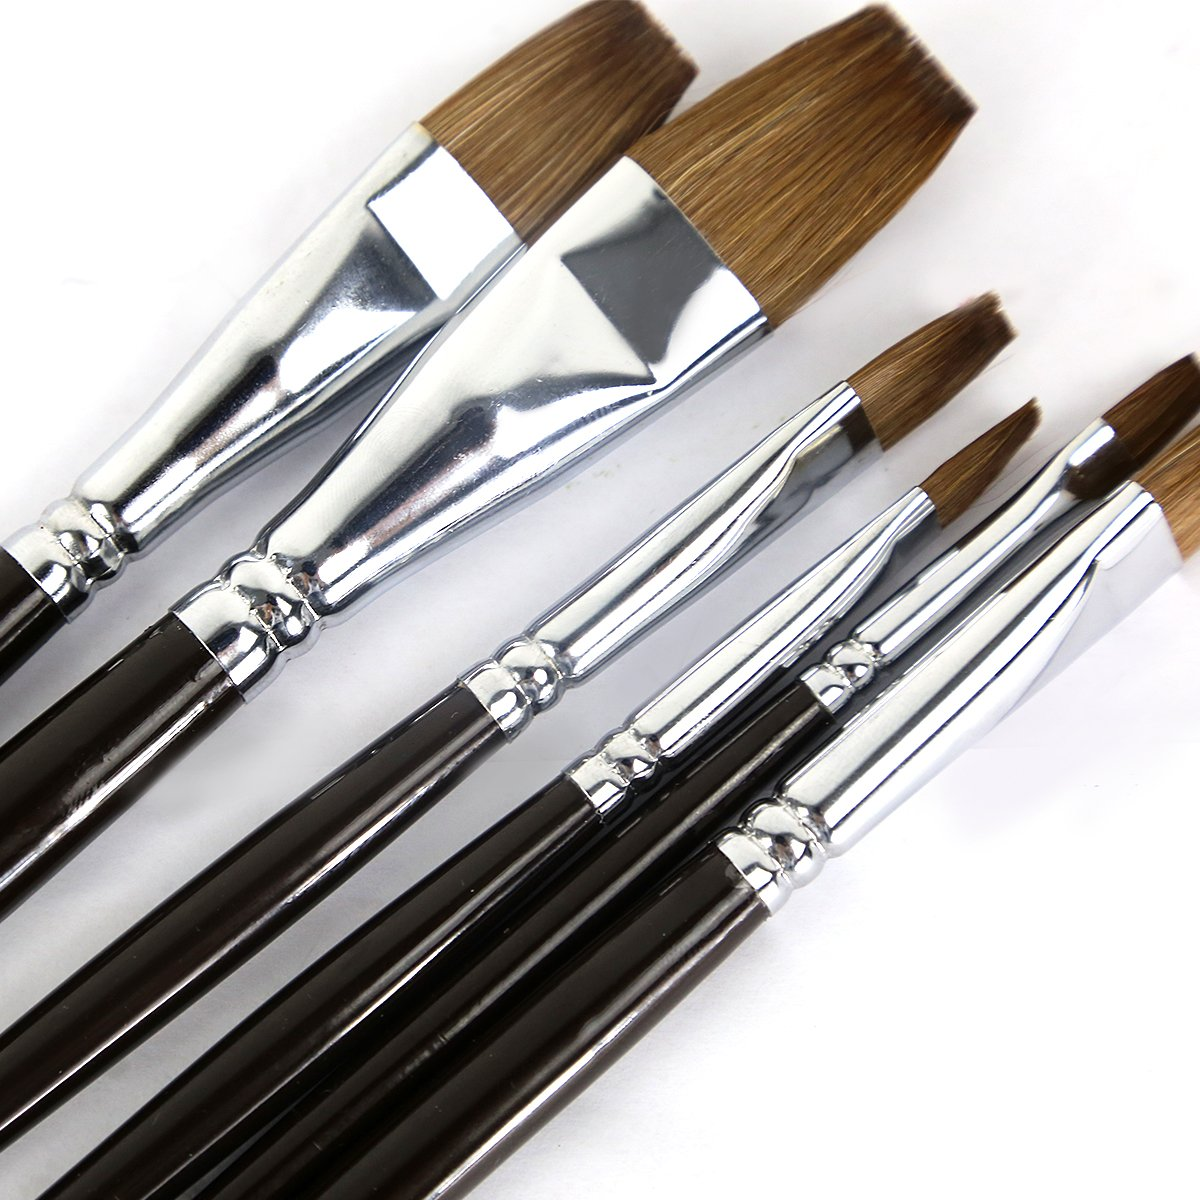 Artist Paint Brushes - Top Quality Red Sable (Weasel Hair) Long Handle, Flat Paint Brush Set for Acrylic, Oil, Gouache and Watercolor Painting Offering Excellent Paint Holding and Easy Flow of Paint by Magic Touches Making Life Magical